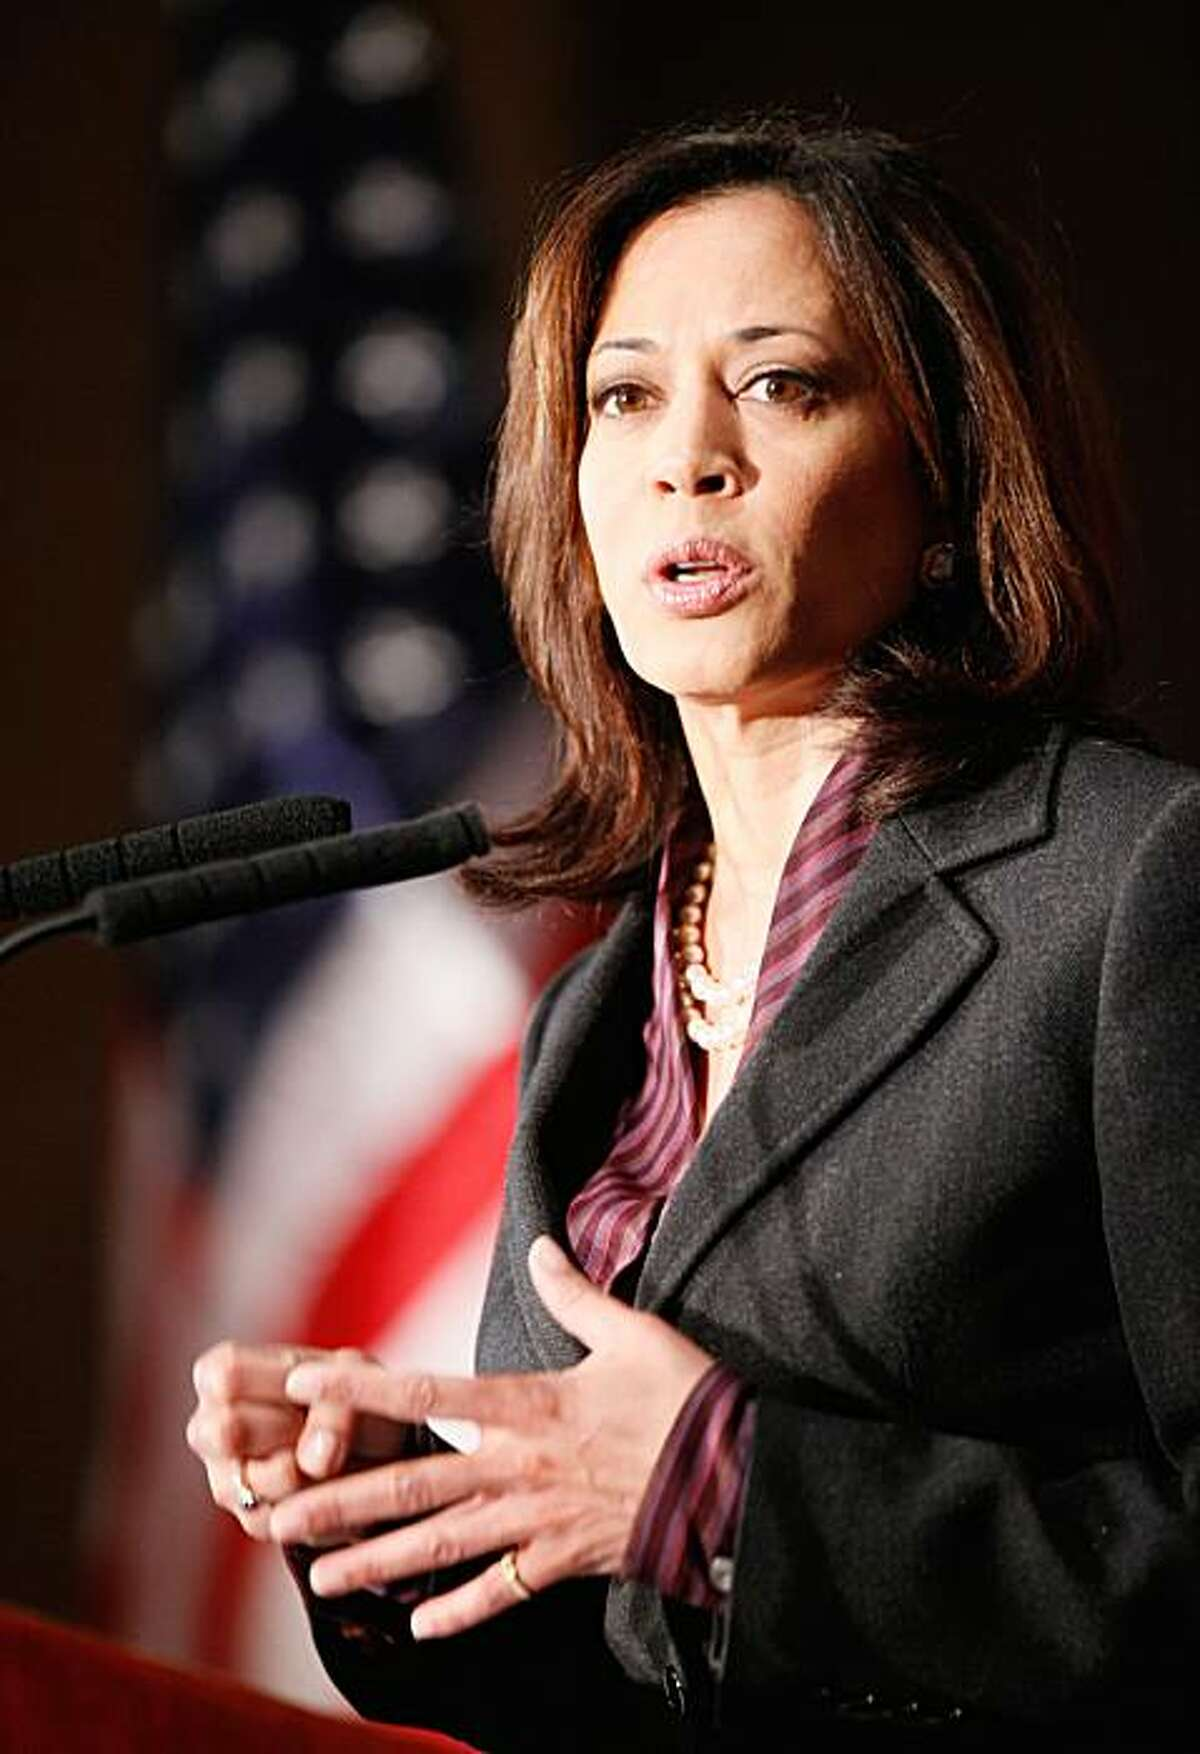 California's newly elected attorney general KamalaHarris gives her first news conference in Los Angeles on Tuesday, Nov. 30, 2010. Republican Steve Cooley conceded the California attorney general's race to Democrat Harris last week, giving Democrats a sweep of all statewide offices and ushering in the first woman and first minority elected to the post.